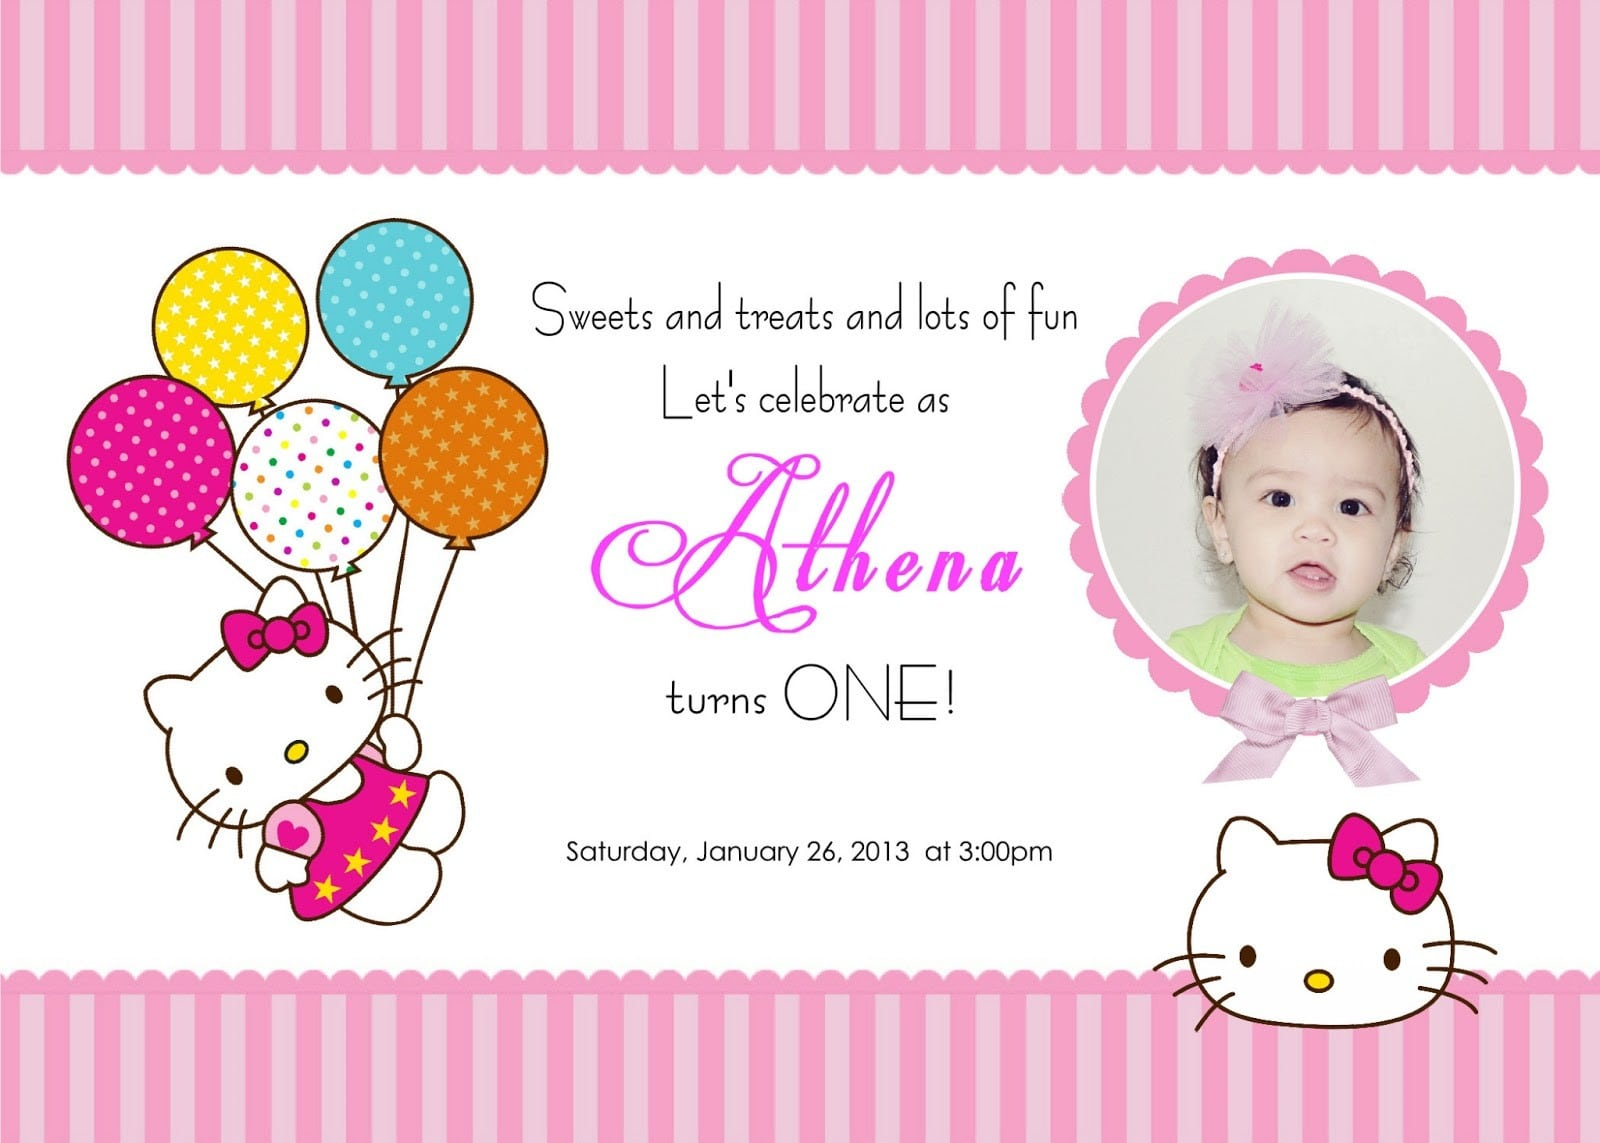 29th birthday party invitation wording Invitationsweddorg